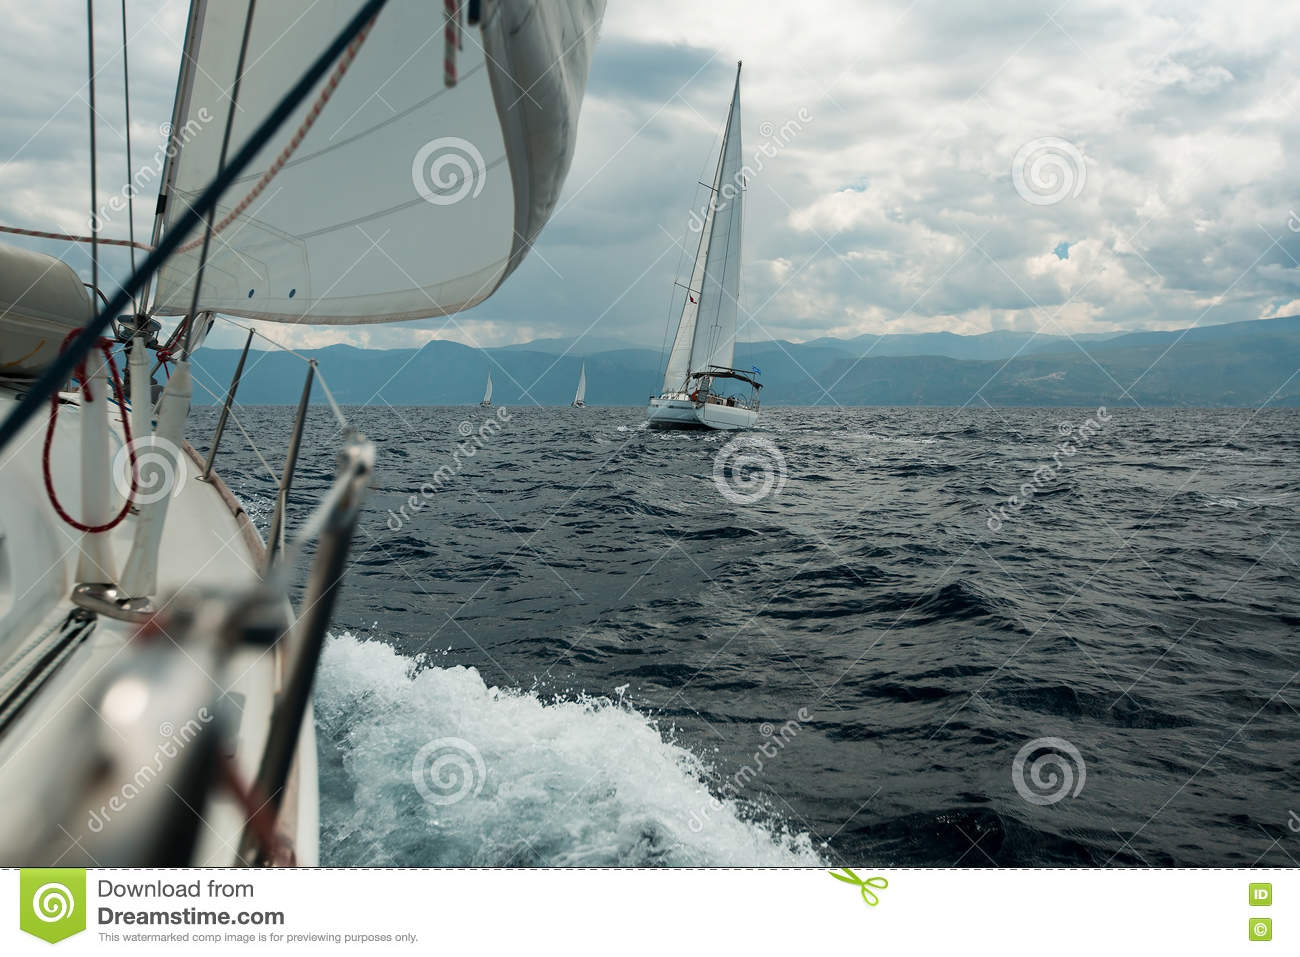 Yacht racing at sea in cloudy weather.